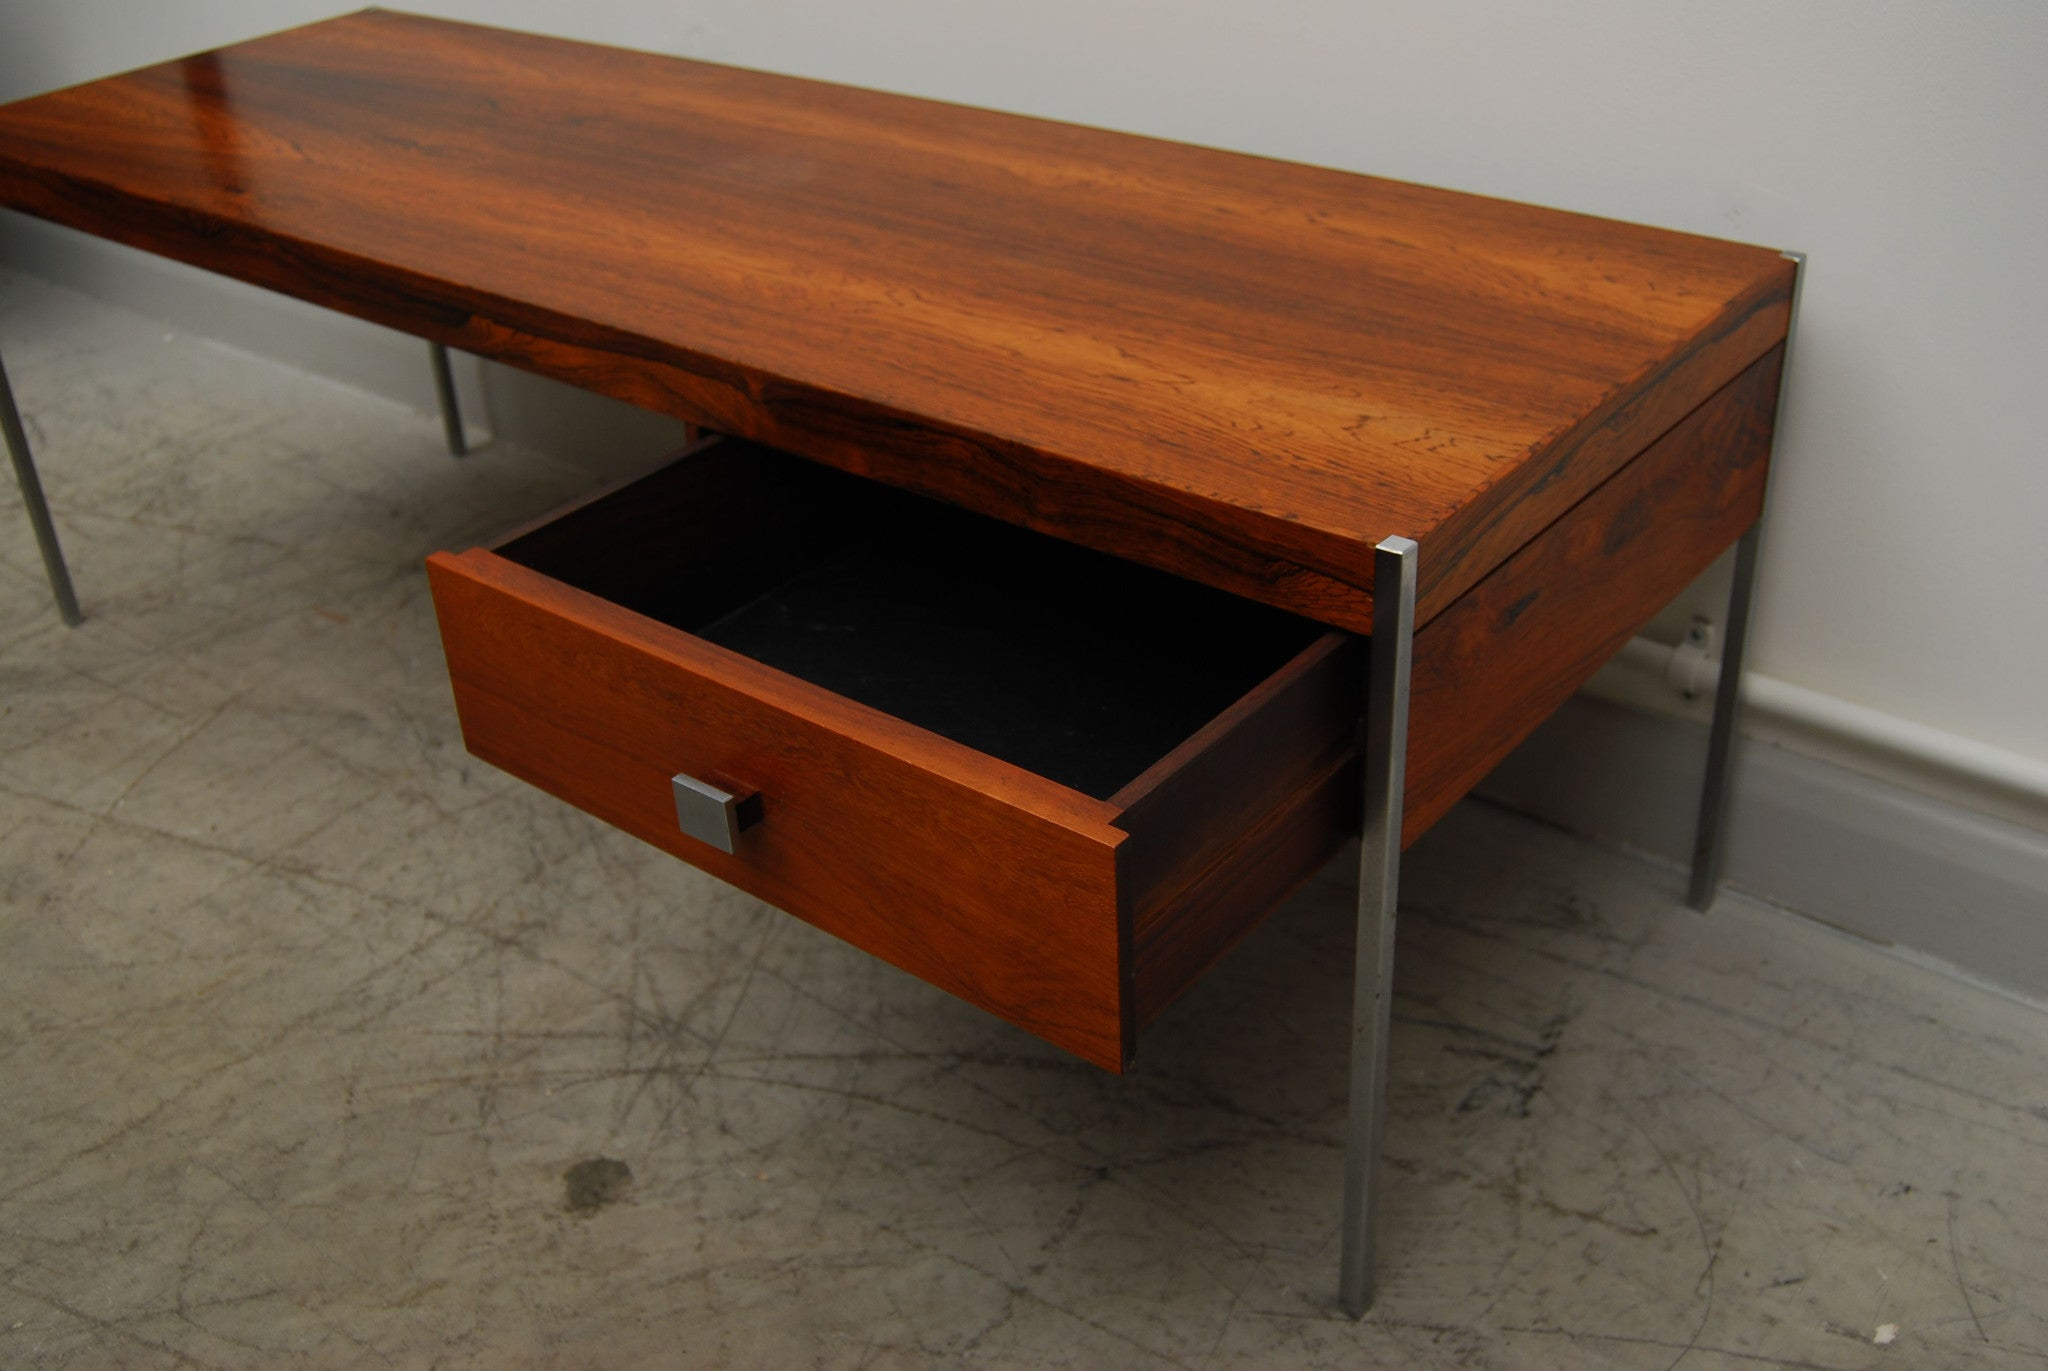 Rosewood coffee table / TV table